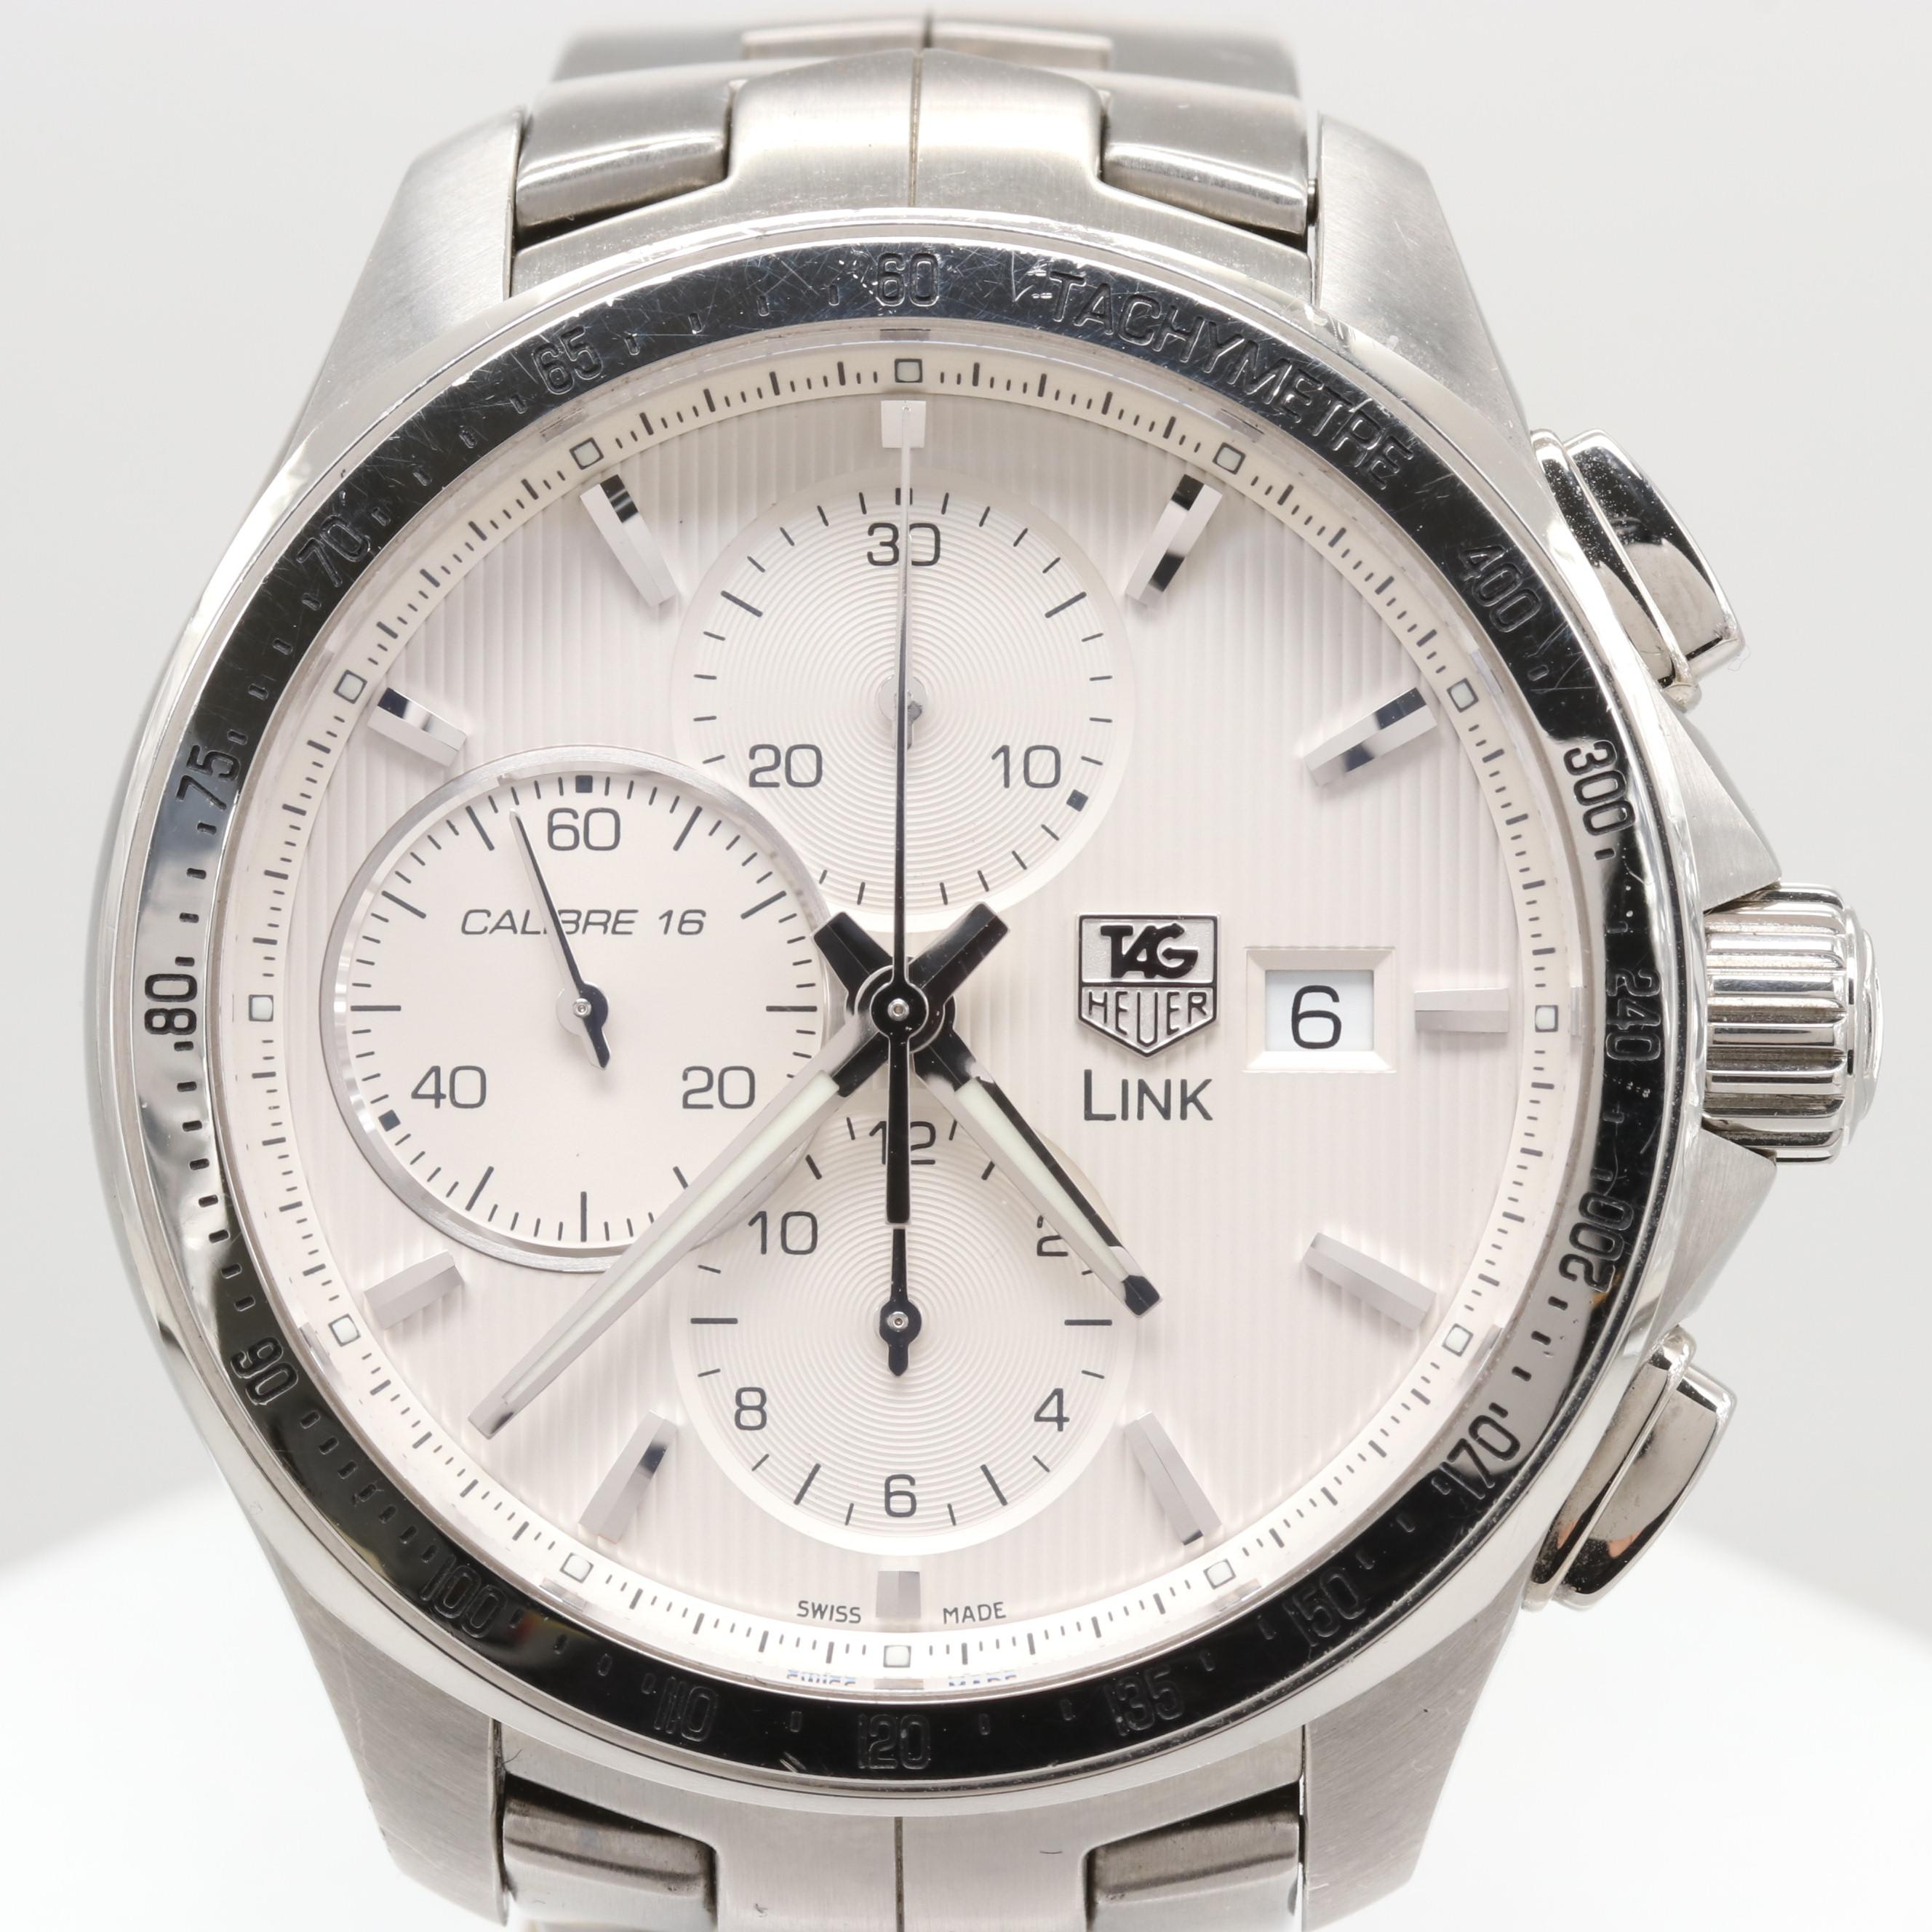 TAG Heuer Link Calibre 16 Automatic Chronograph Wristwatch